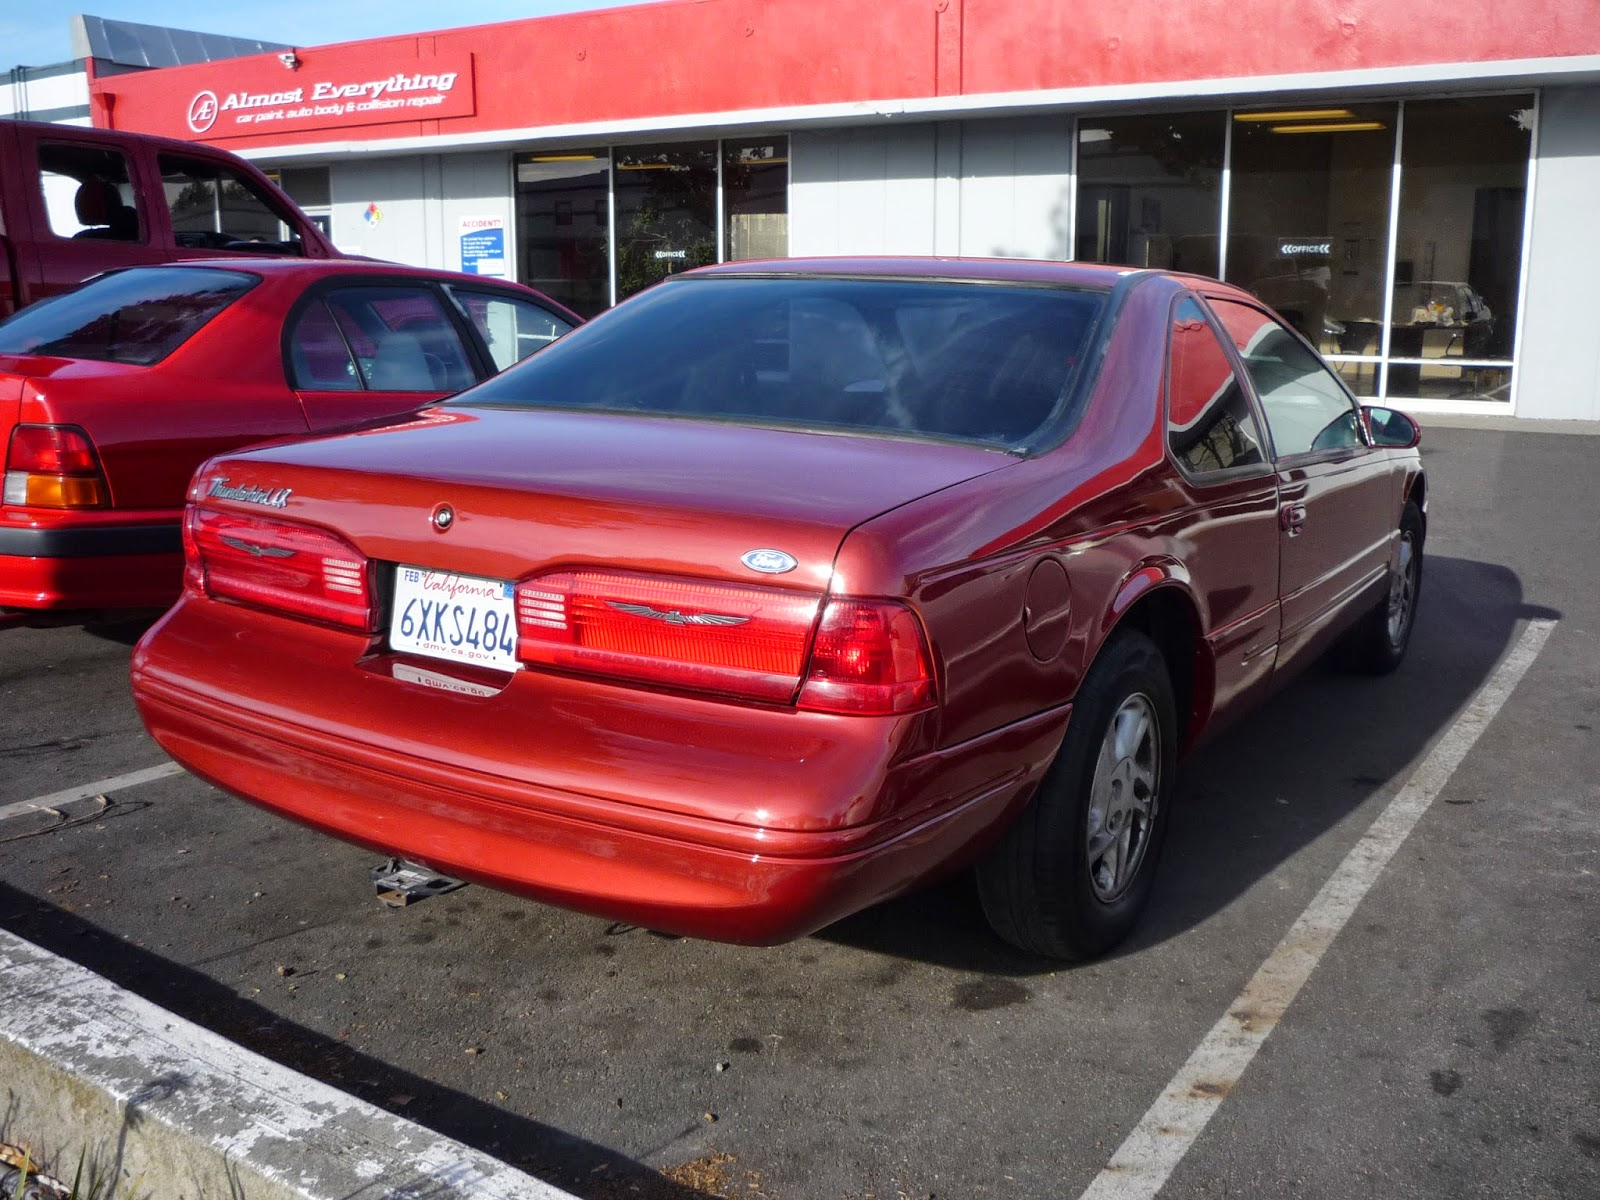 1996 Ford Thunderbird after auto body repairs & paint at Almost Everything Auto Body